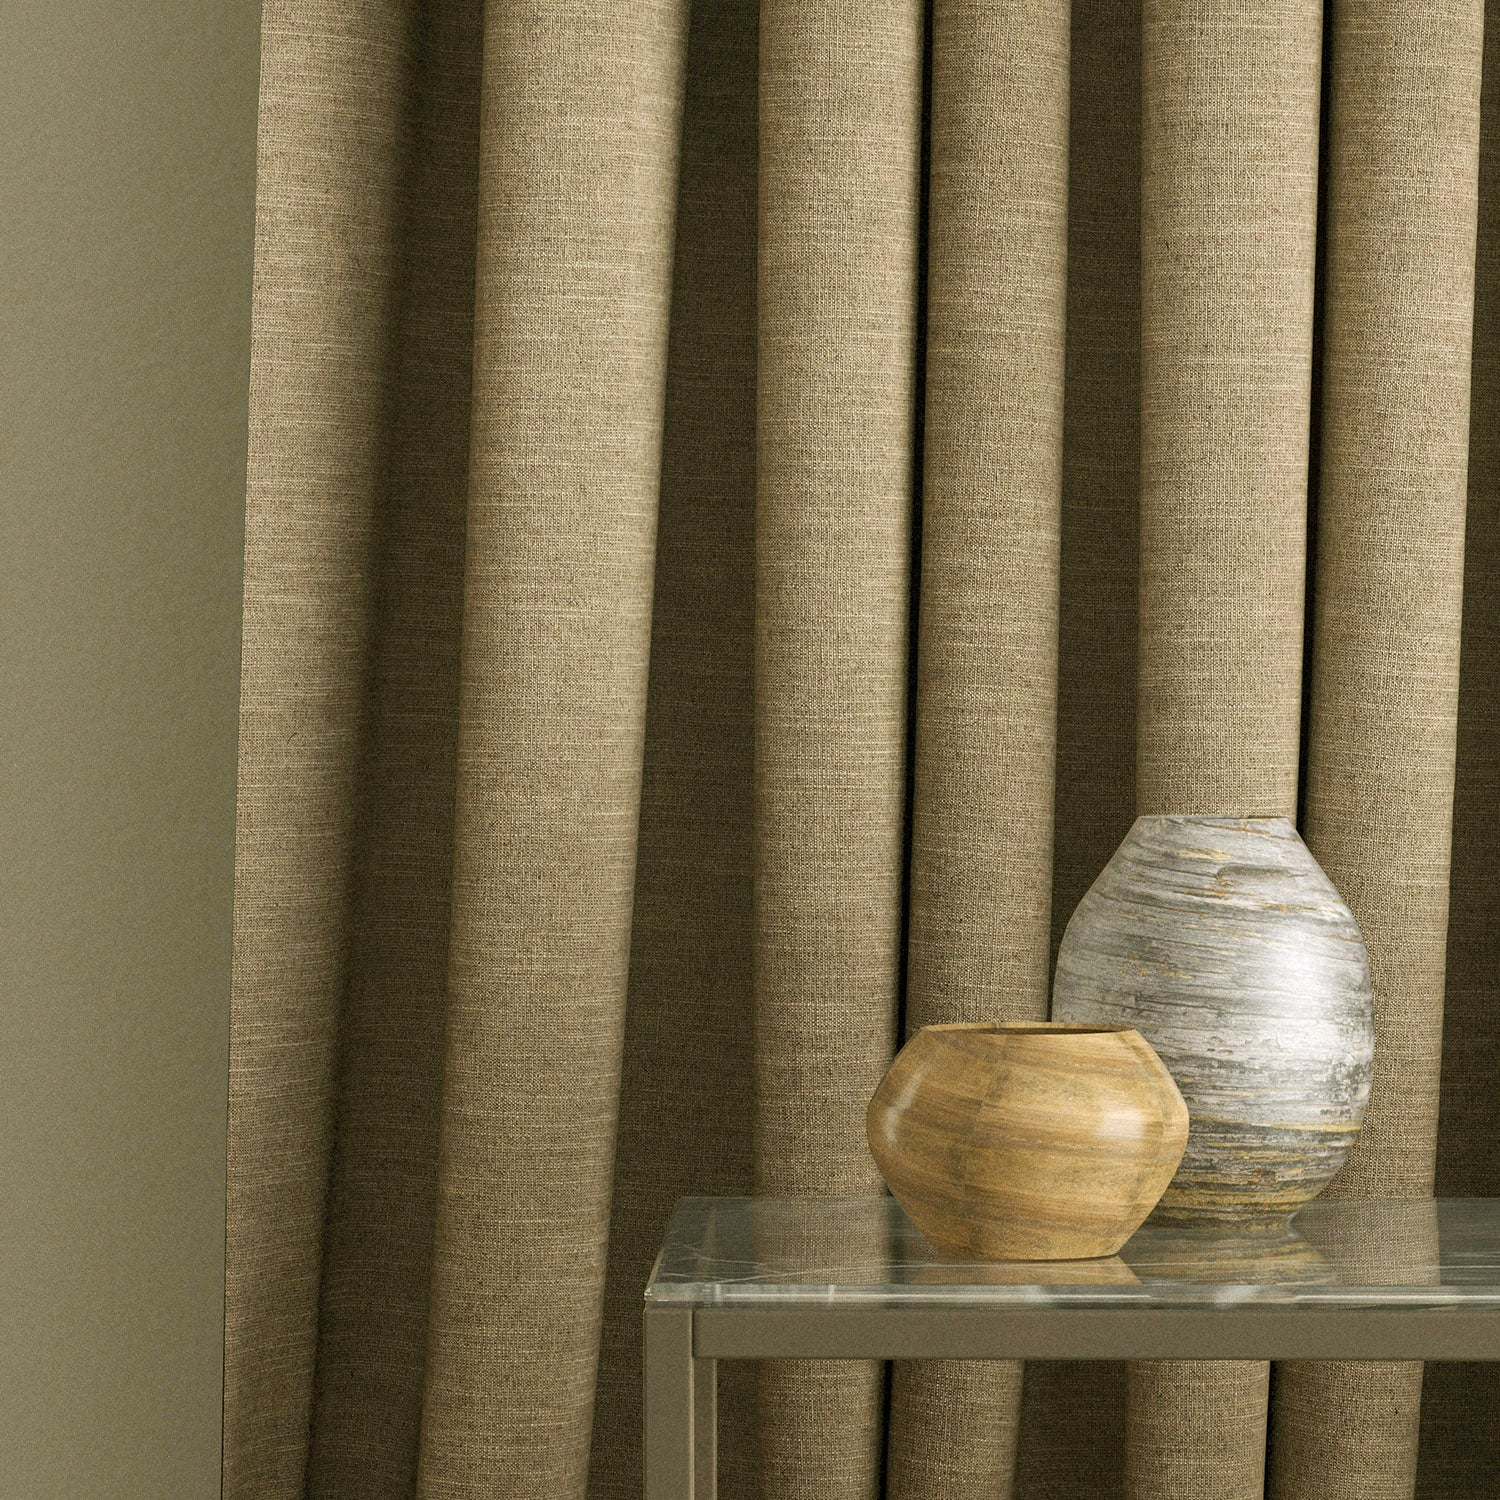 Curtain in a plain brown linen blend fabric